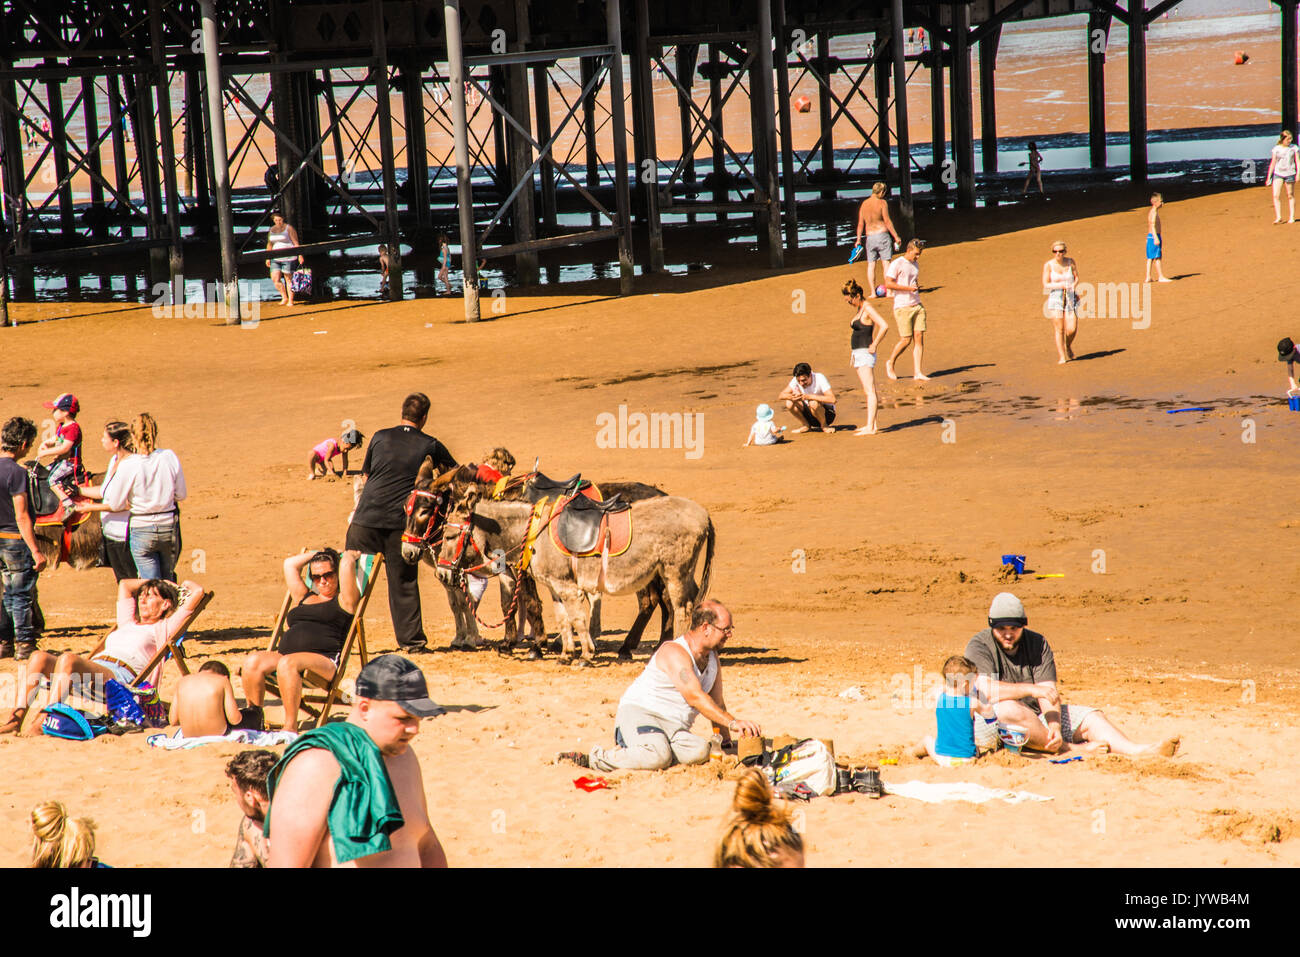 playing on the beach  Yorkshire  Ray Boswell - Stock Image